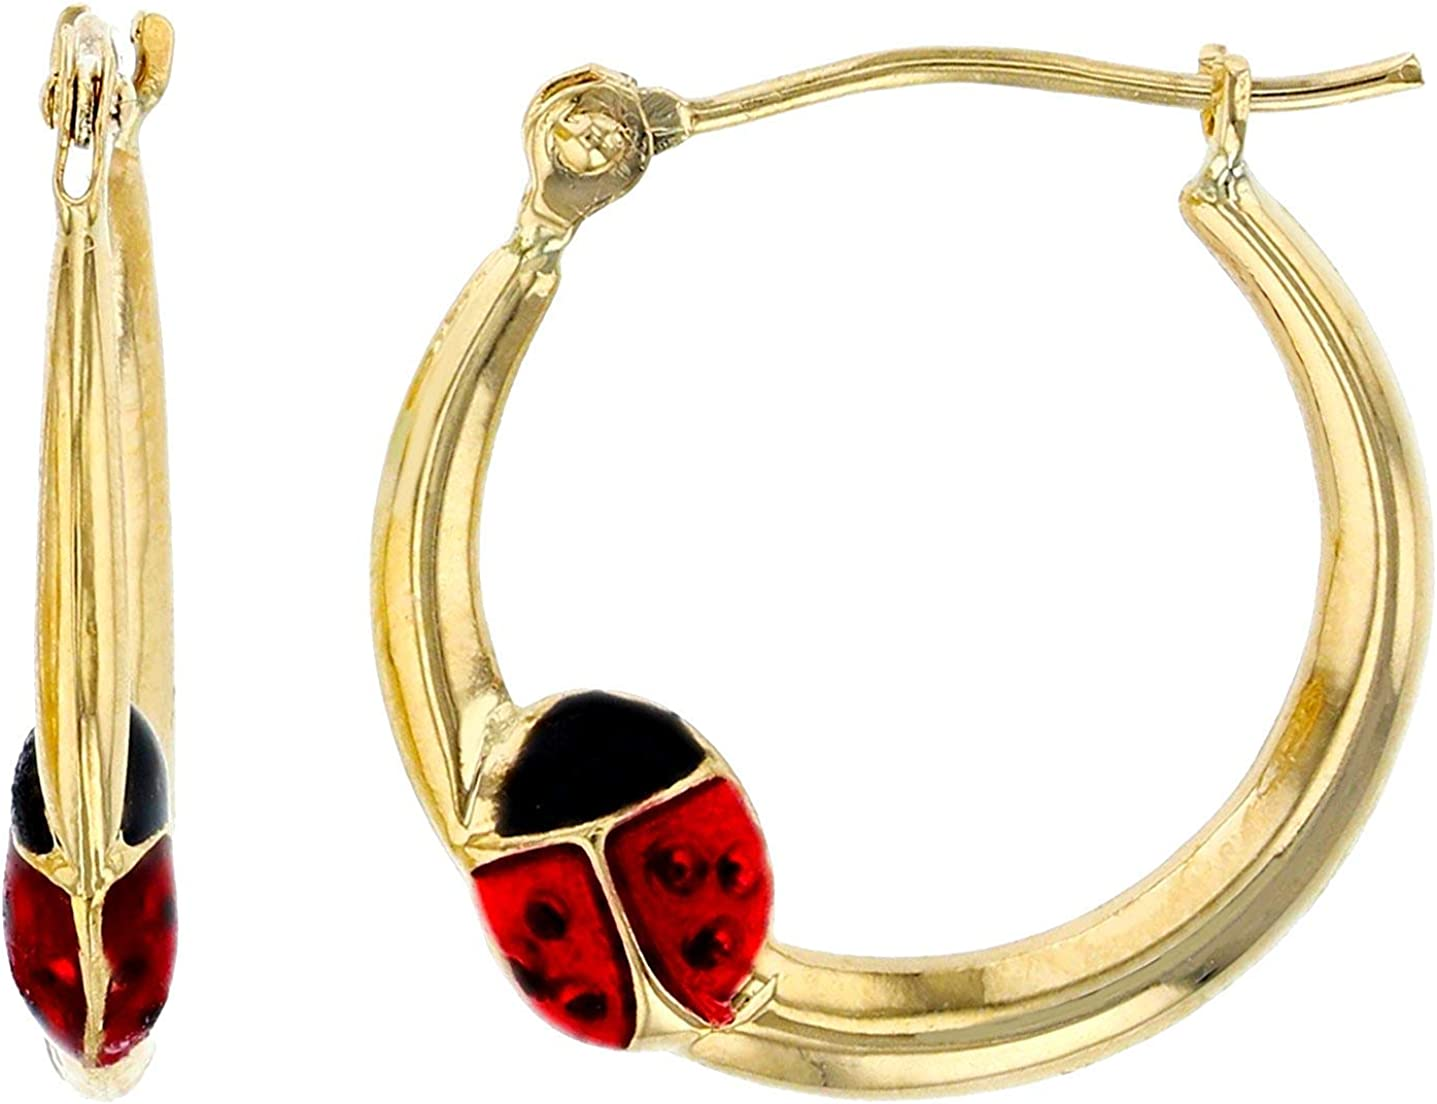 14K Yellow Gold Enamel Lady Bug Hoop Earrings, Stud Earrings and Bracelet For Women | Solid 14K Gold | Made in Italy | Hand Made | Carefully Crafted | Great Gift for all ages